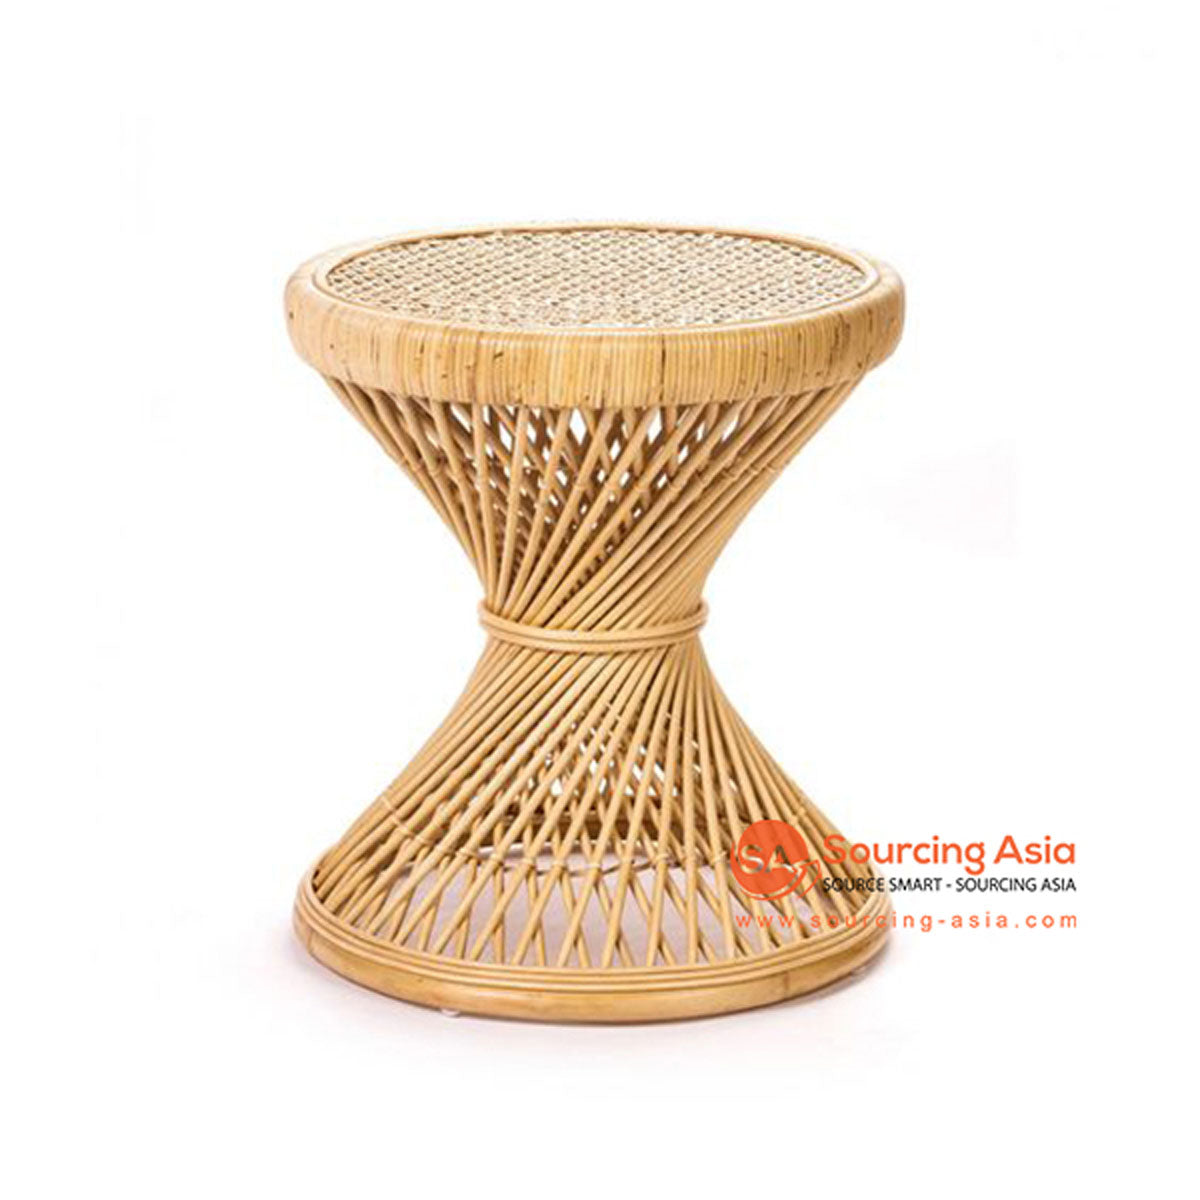 SHL150 NATURAL RATTAN TWISTED TABLE WITH ROUND TOP